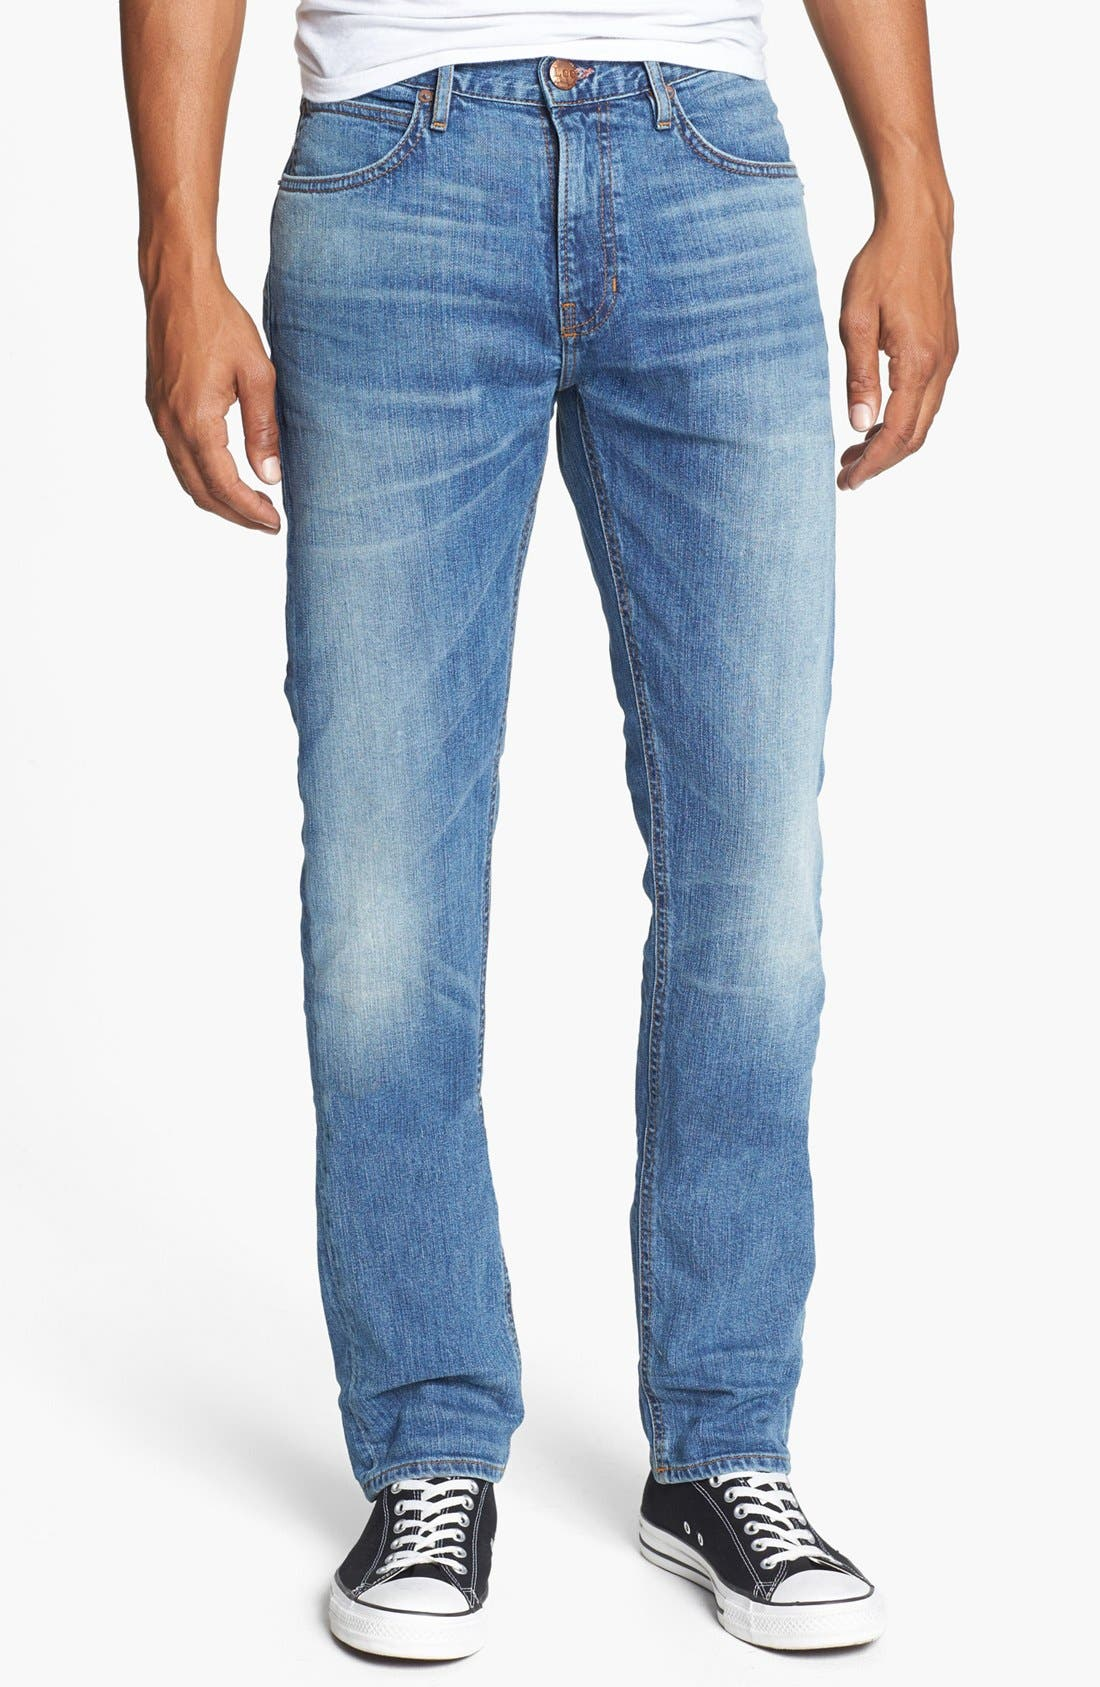 Main Image - Lee 101 USA Lean Straight Leg Jeans (Dry Dust)